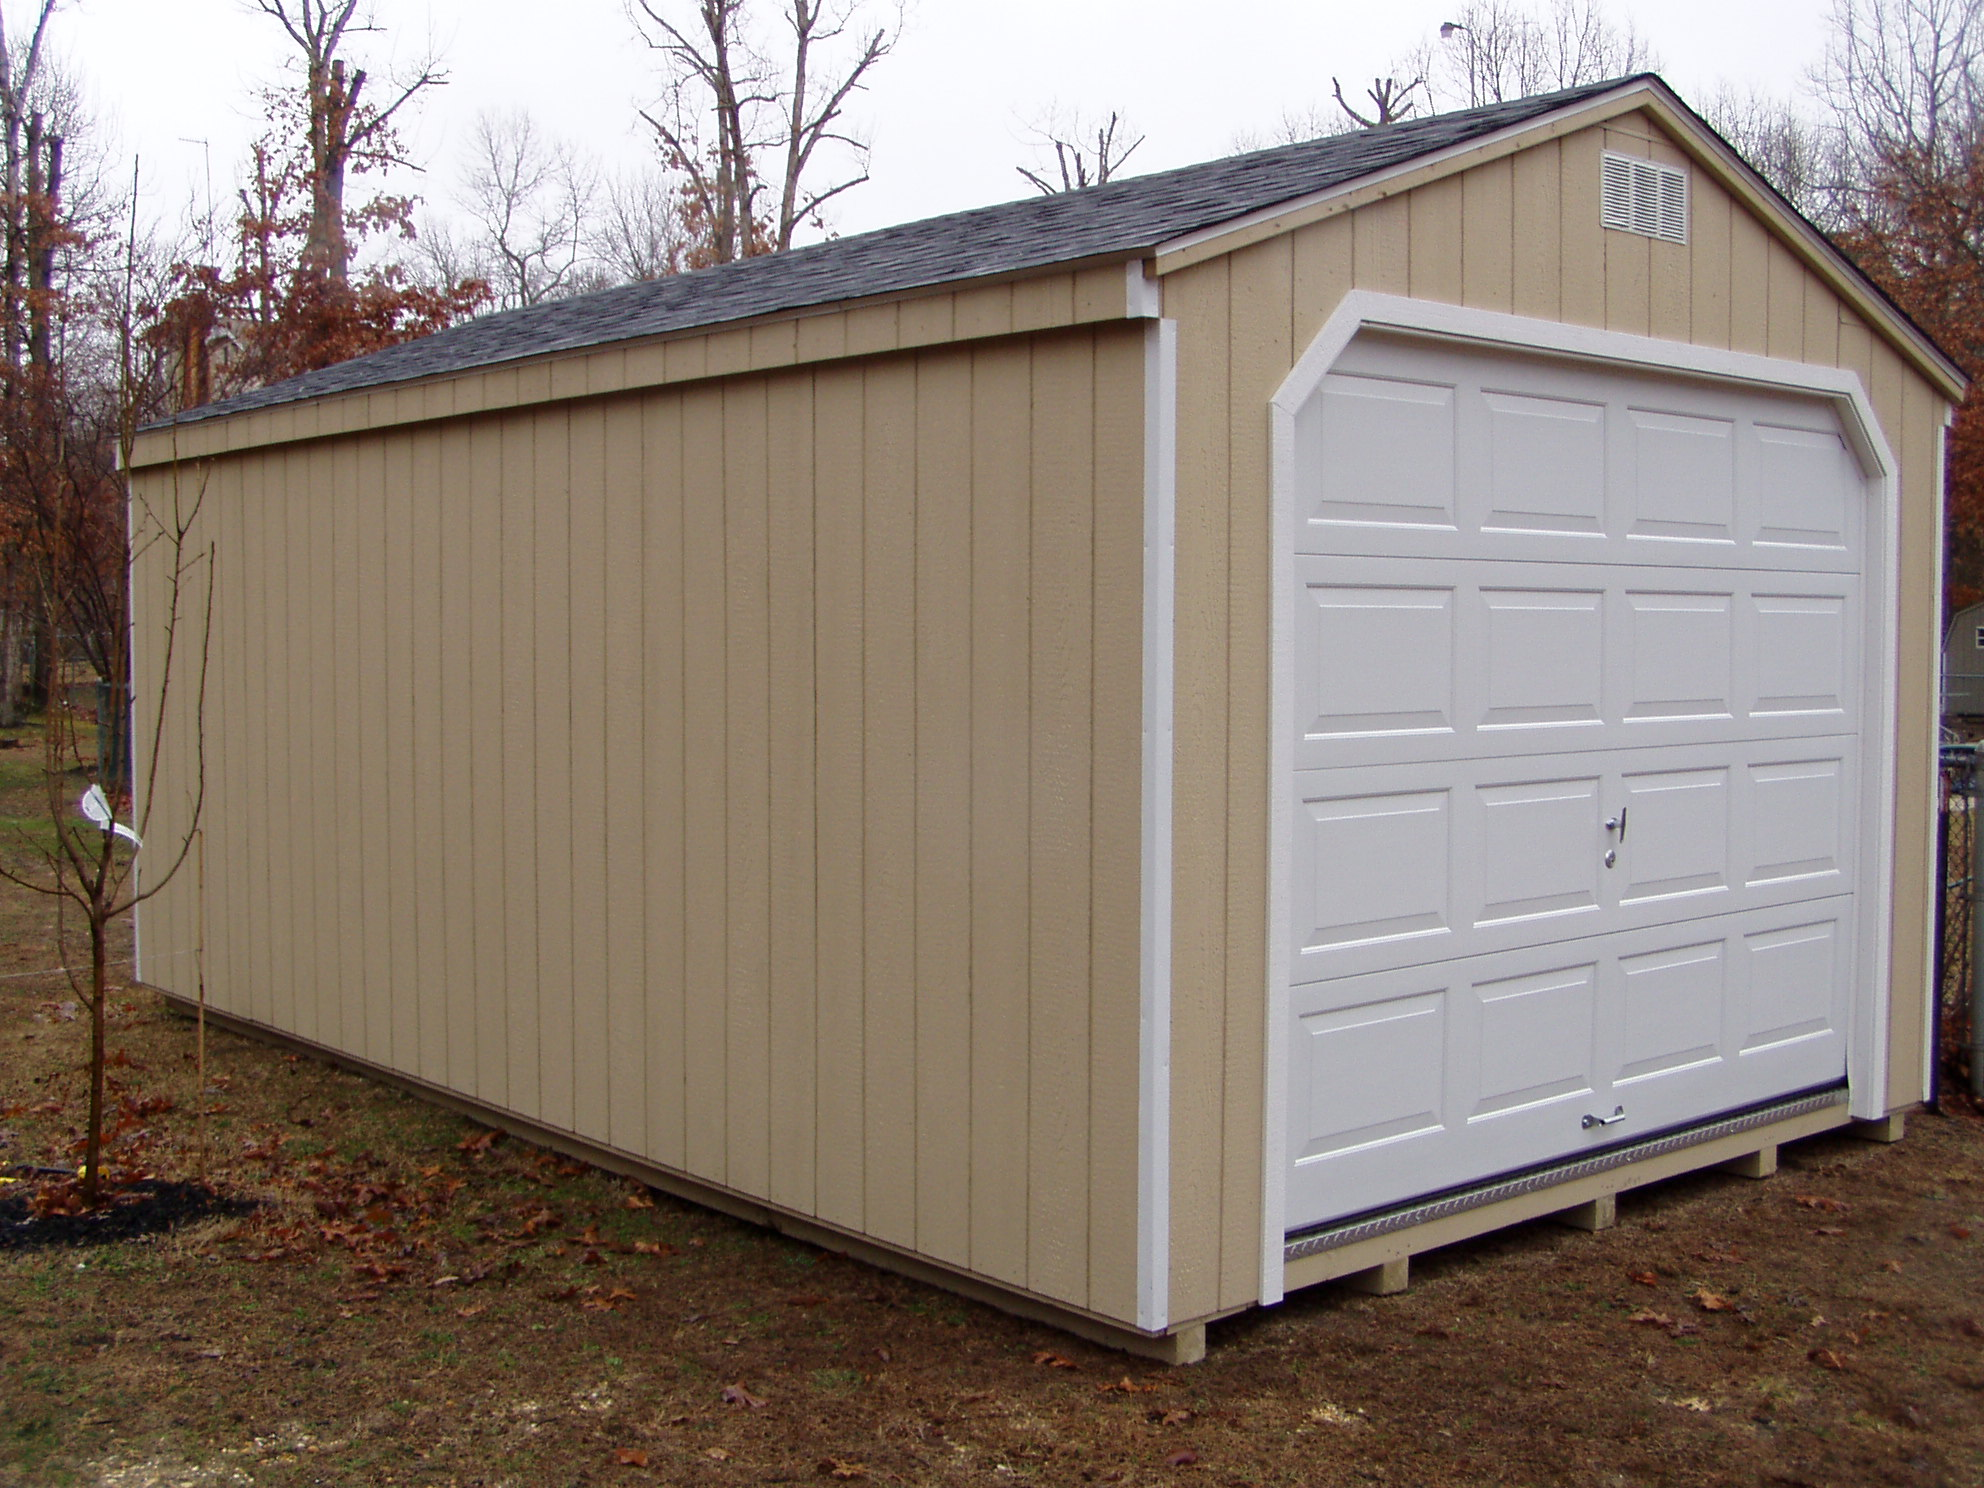 Pole barn garage plans joy studio design gallery best for 12x12 overhead garage door